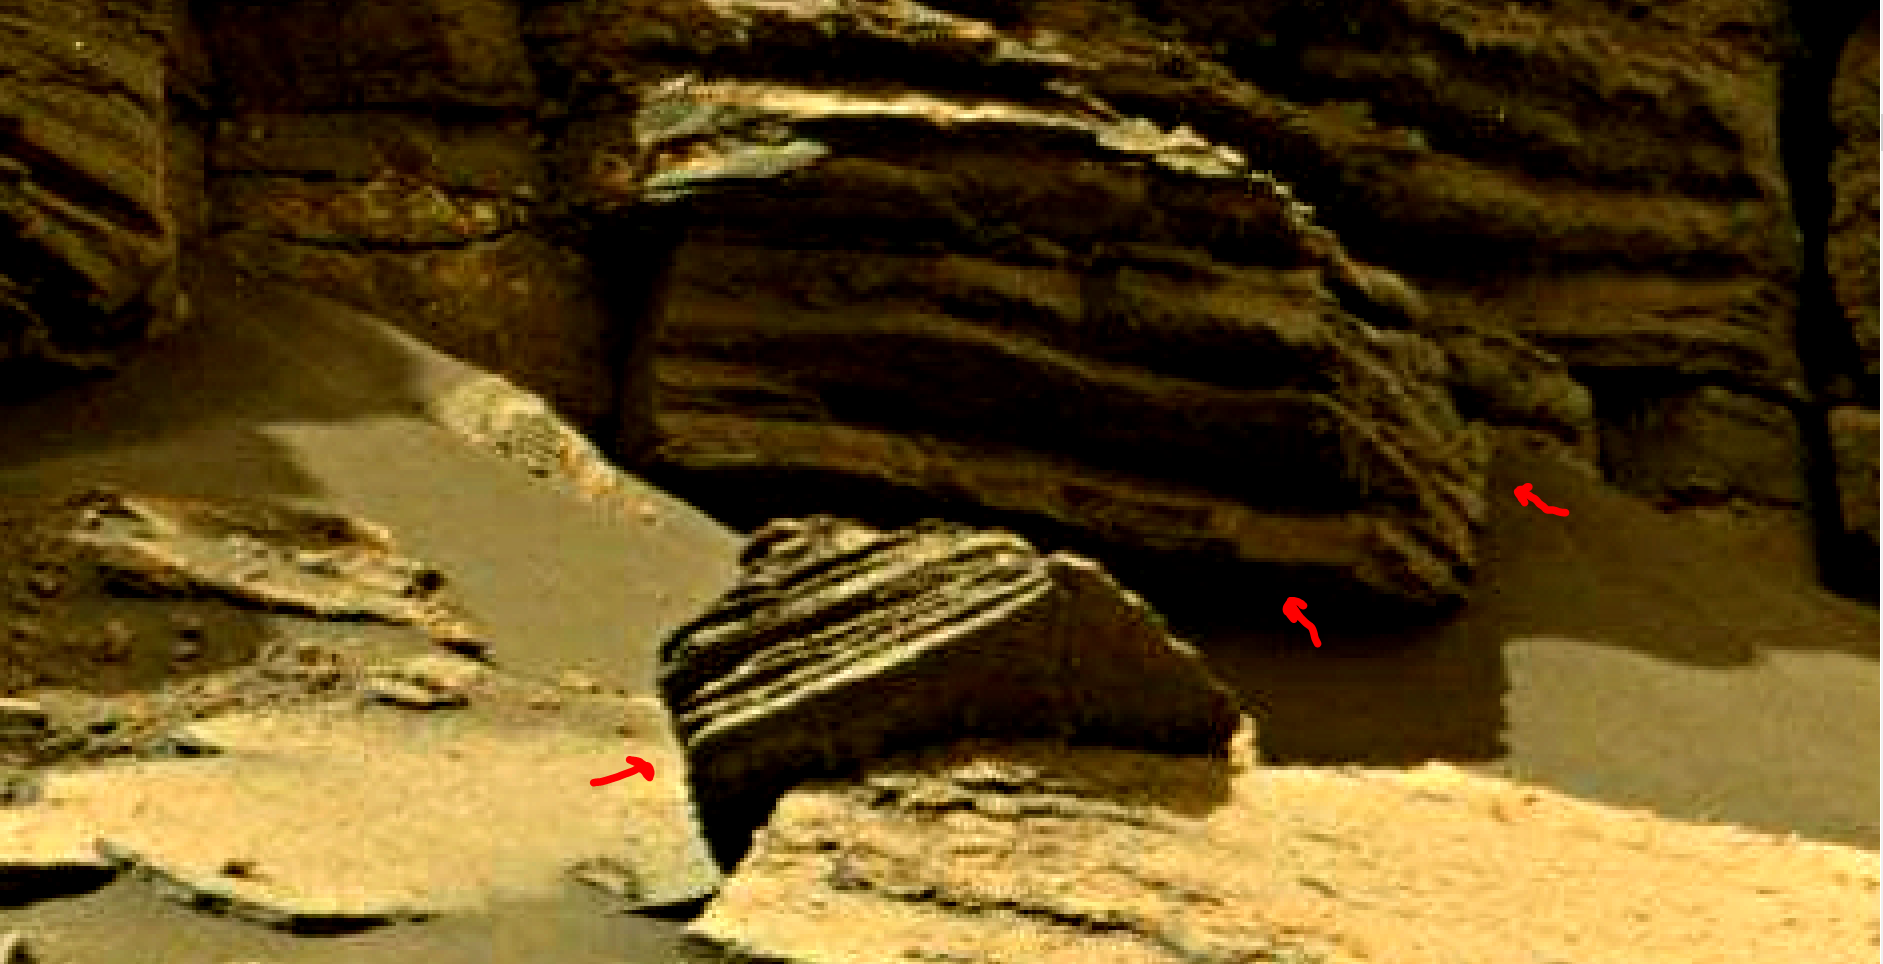 mars-sol-1467-anomaly-artifacts-6-was-life-on-mars